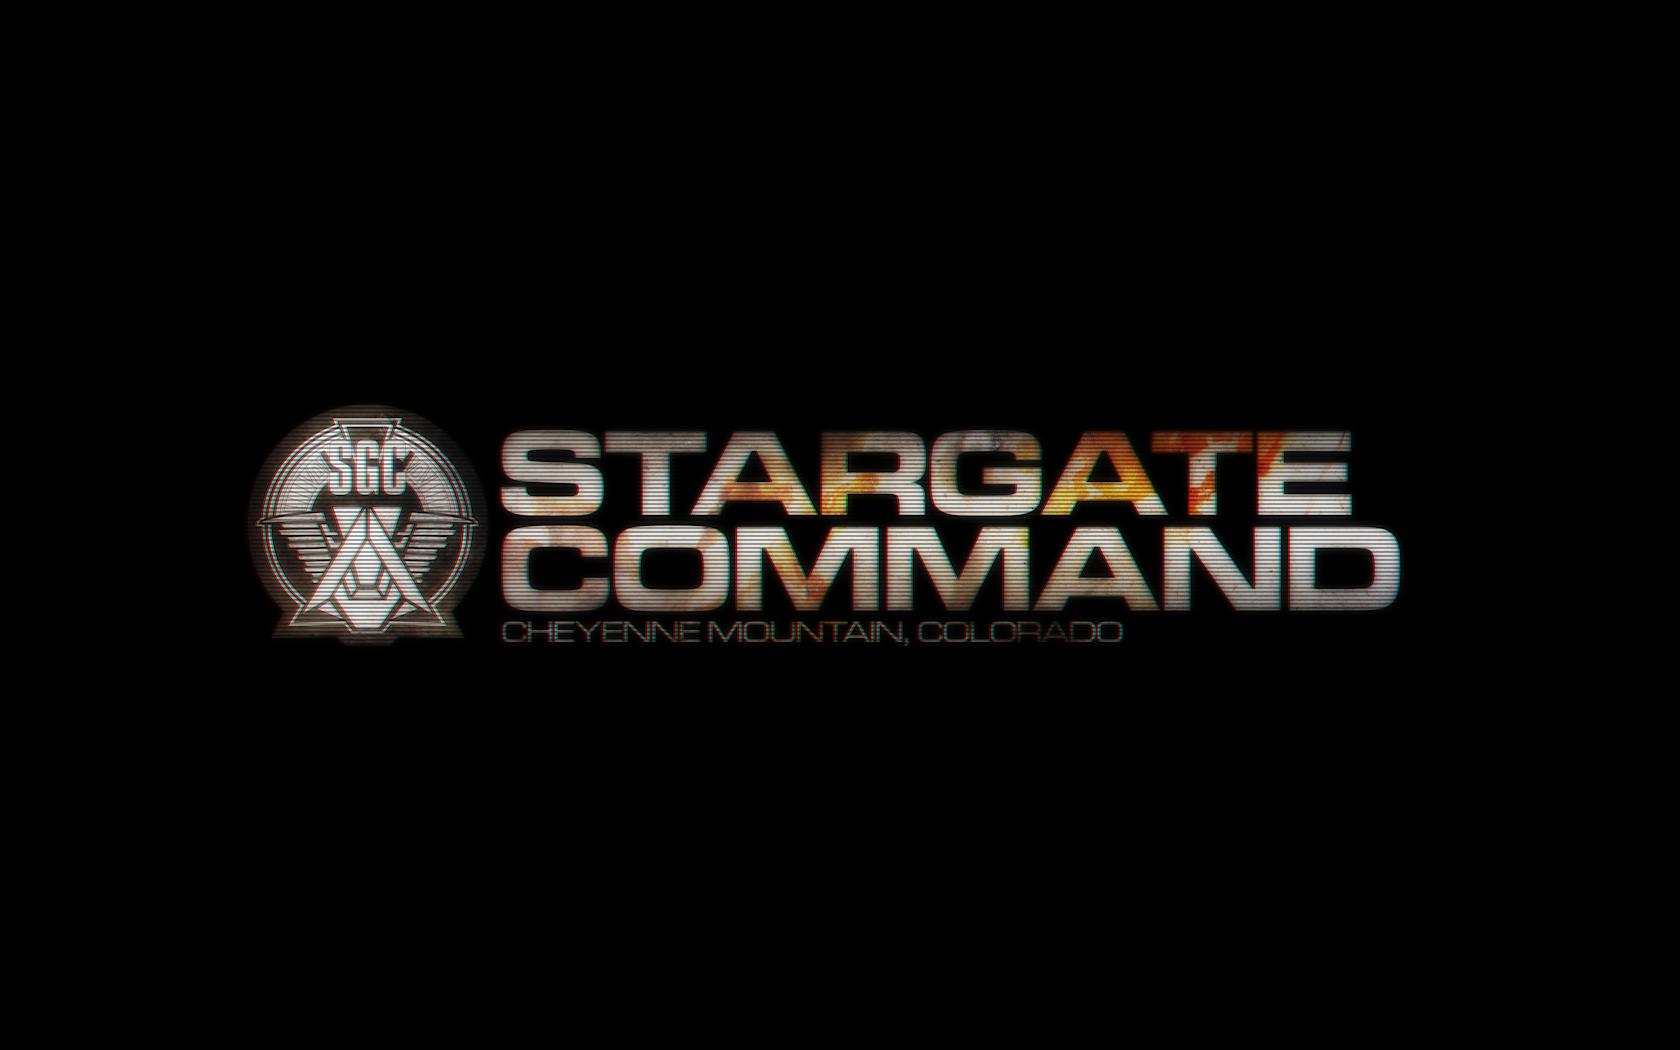 stargate command how to watch